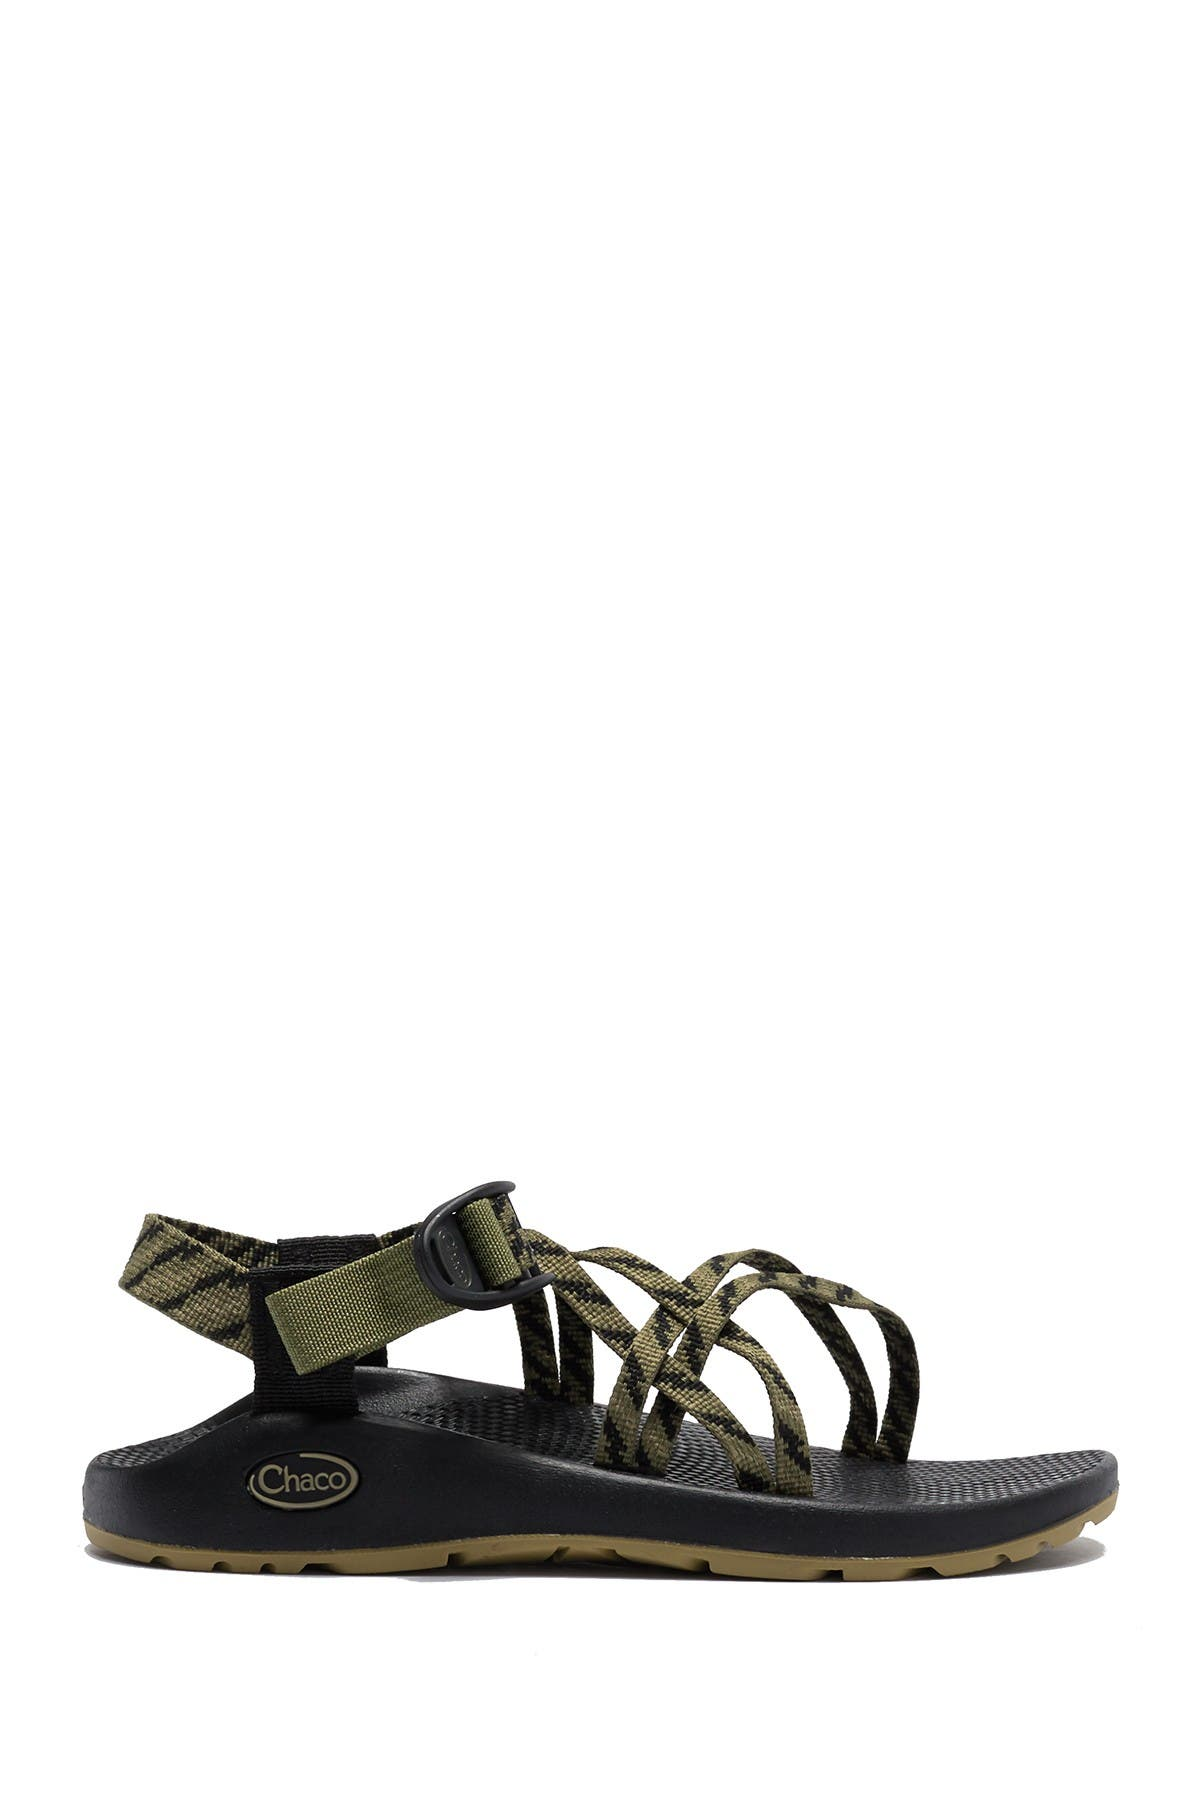 Image of Chaco ZX1 Classic Sandal